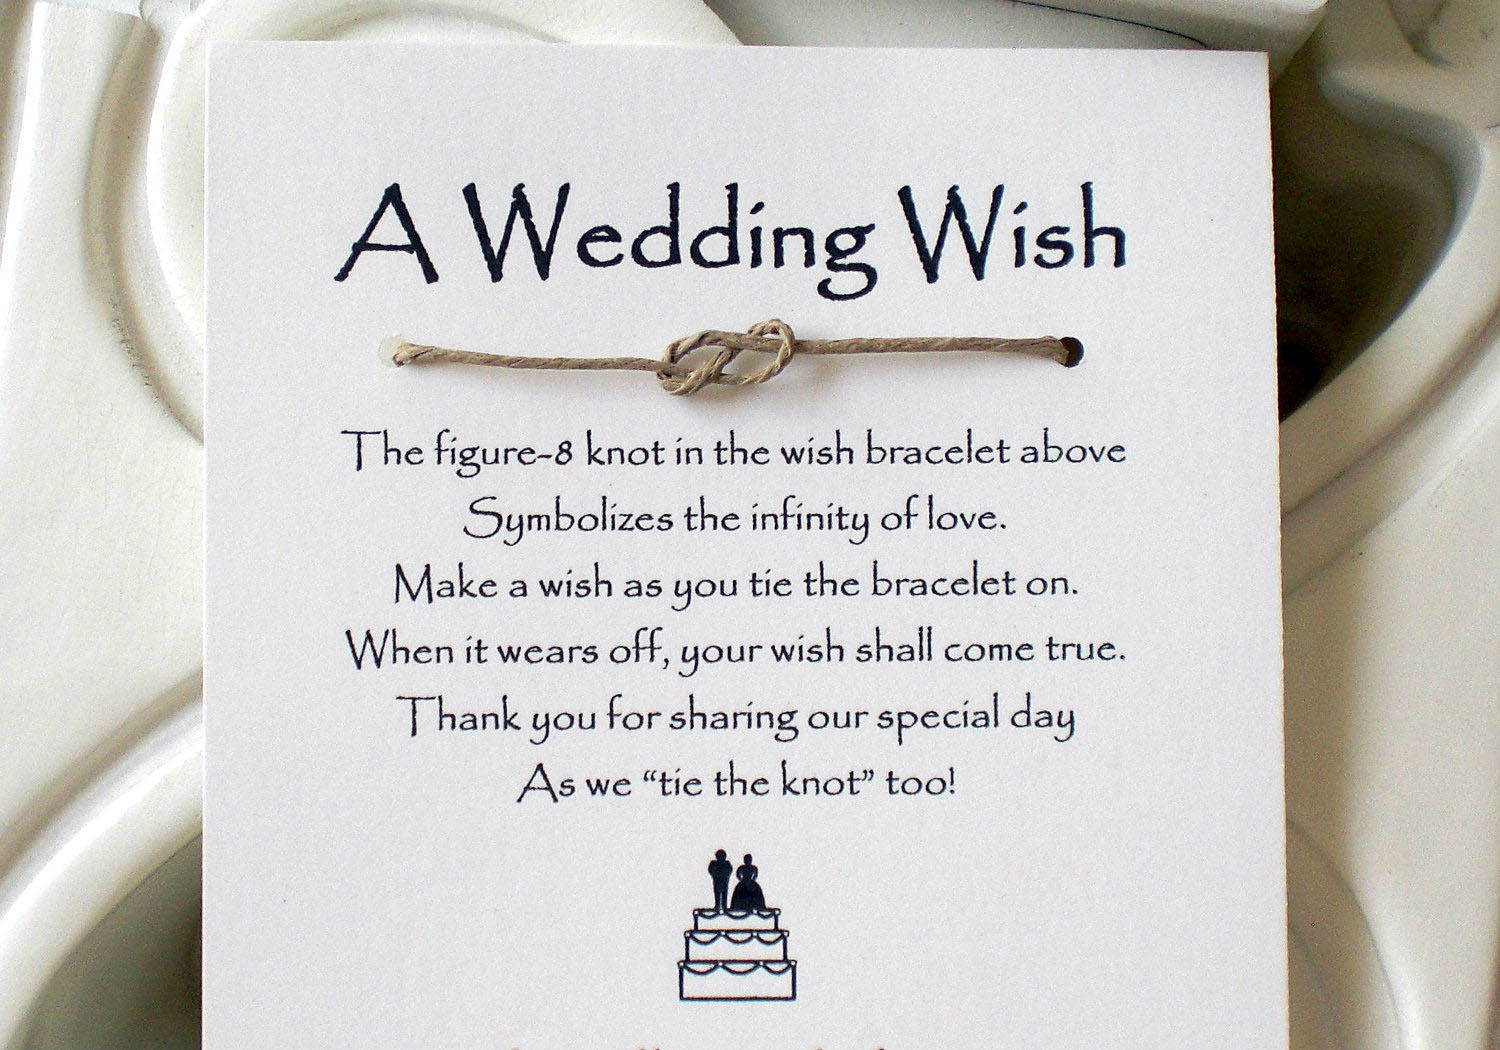 Wedding Love Quotes Love Marriage Quotes For Wedding Cards  Good Morning Wishesgood